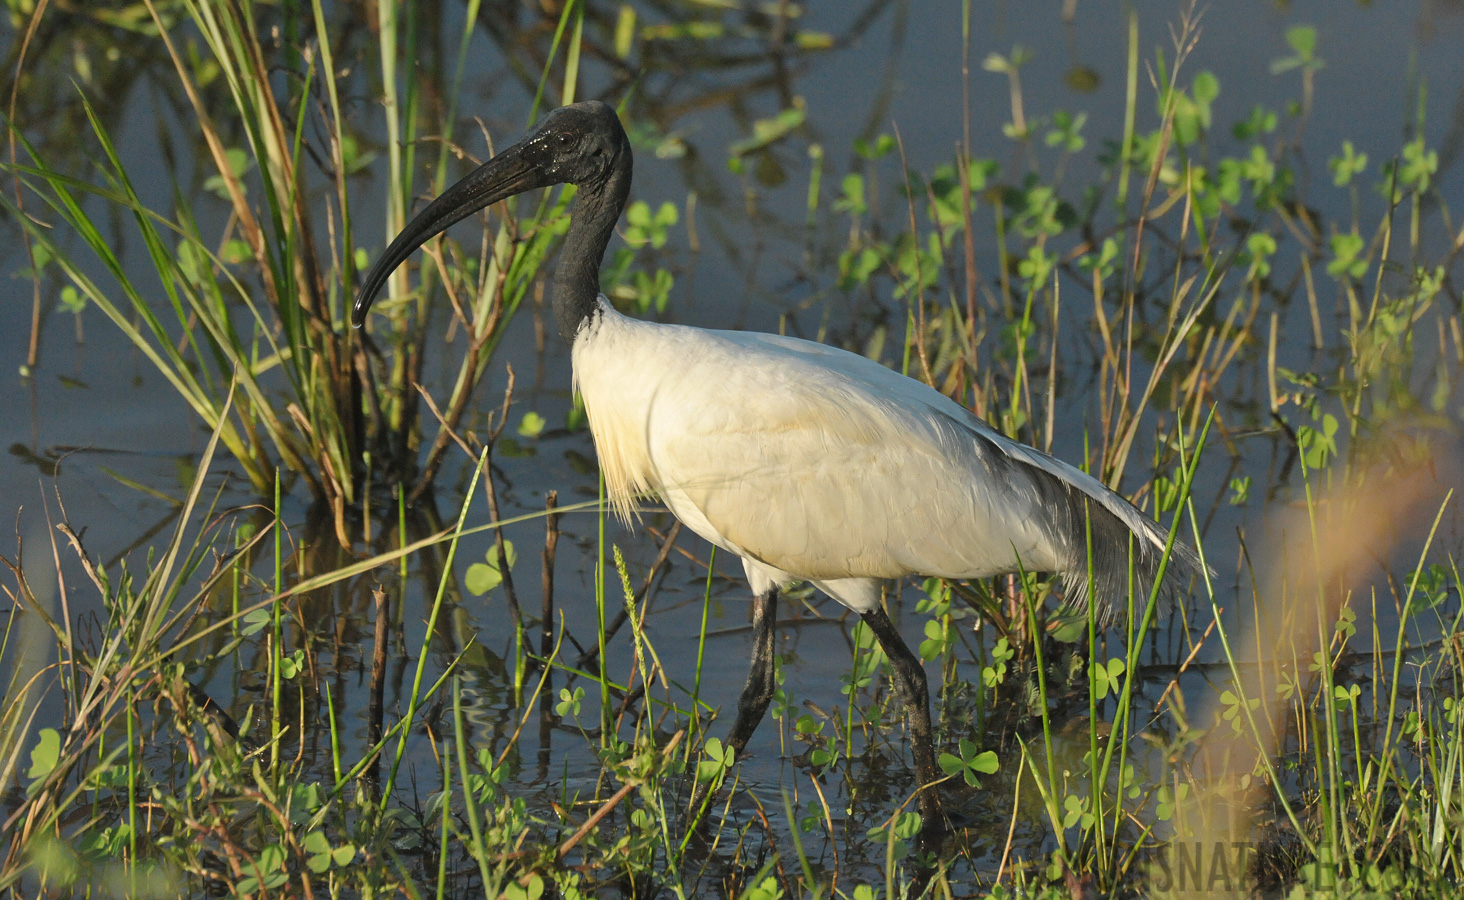 Black-headed ibis [Threskiornis melanocephalus]